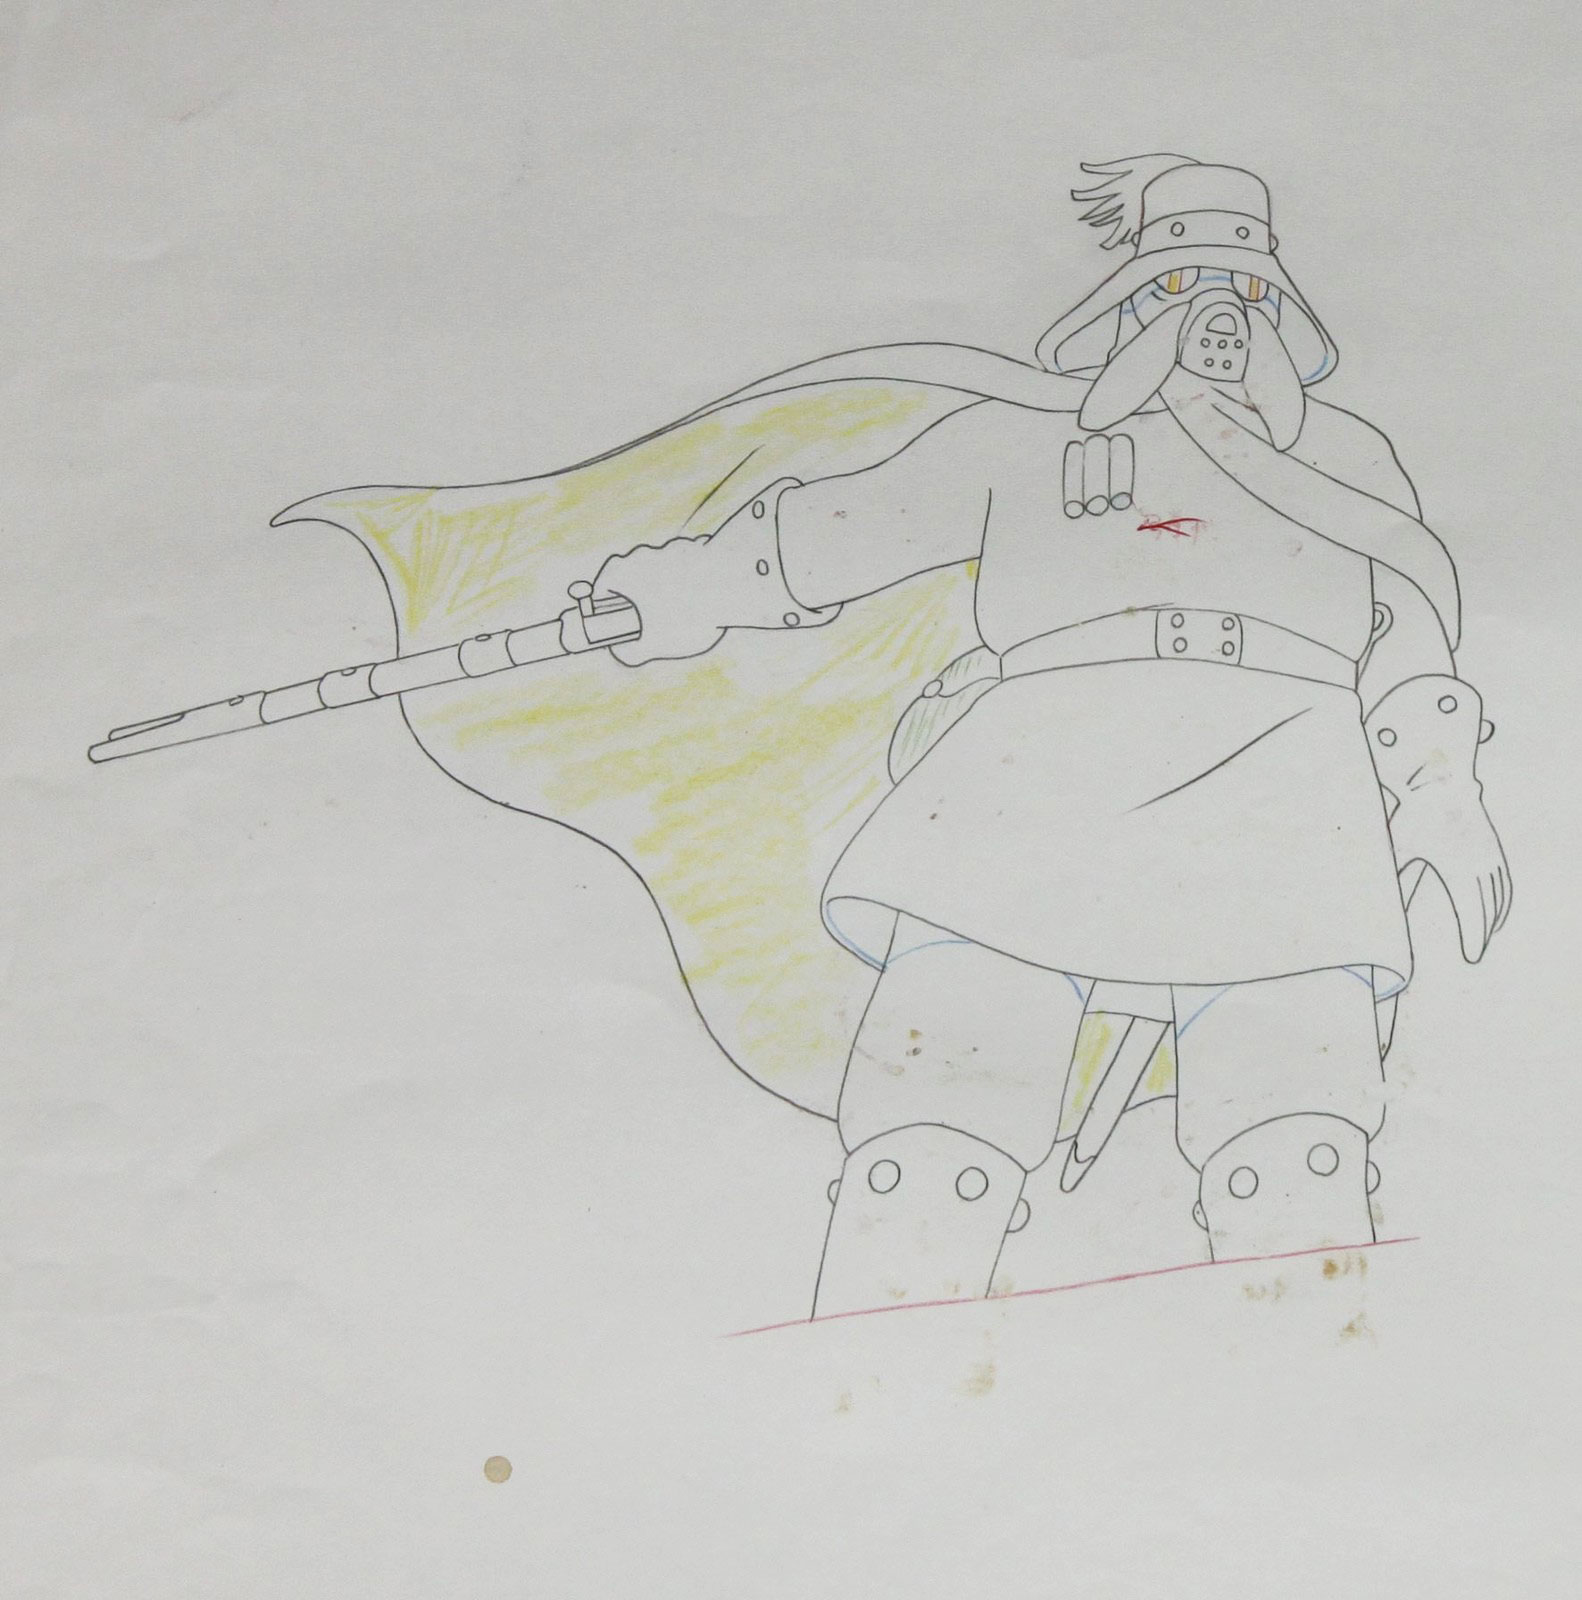 nausicaa_of_the_valley_of_the_wind_concept_art_character_drawing_01.JPG